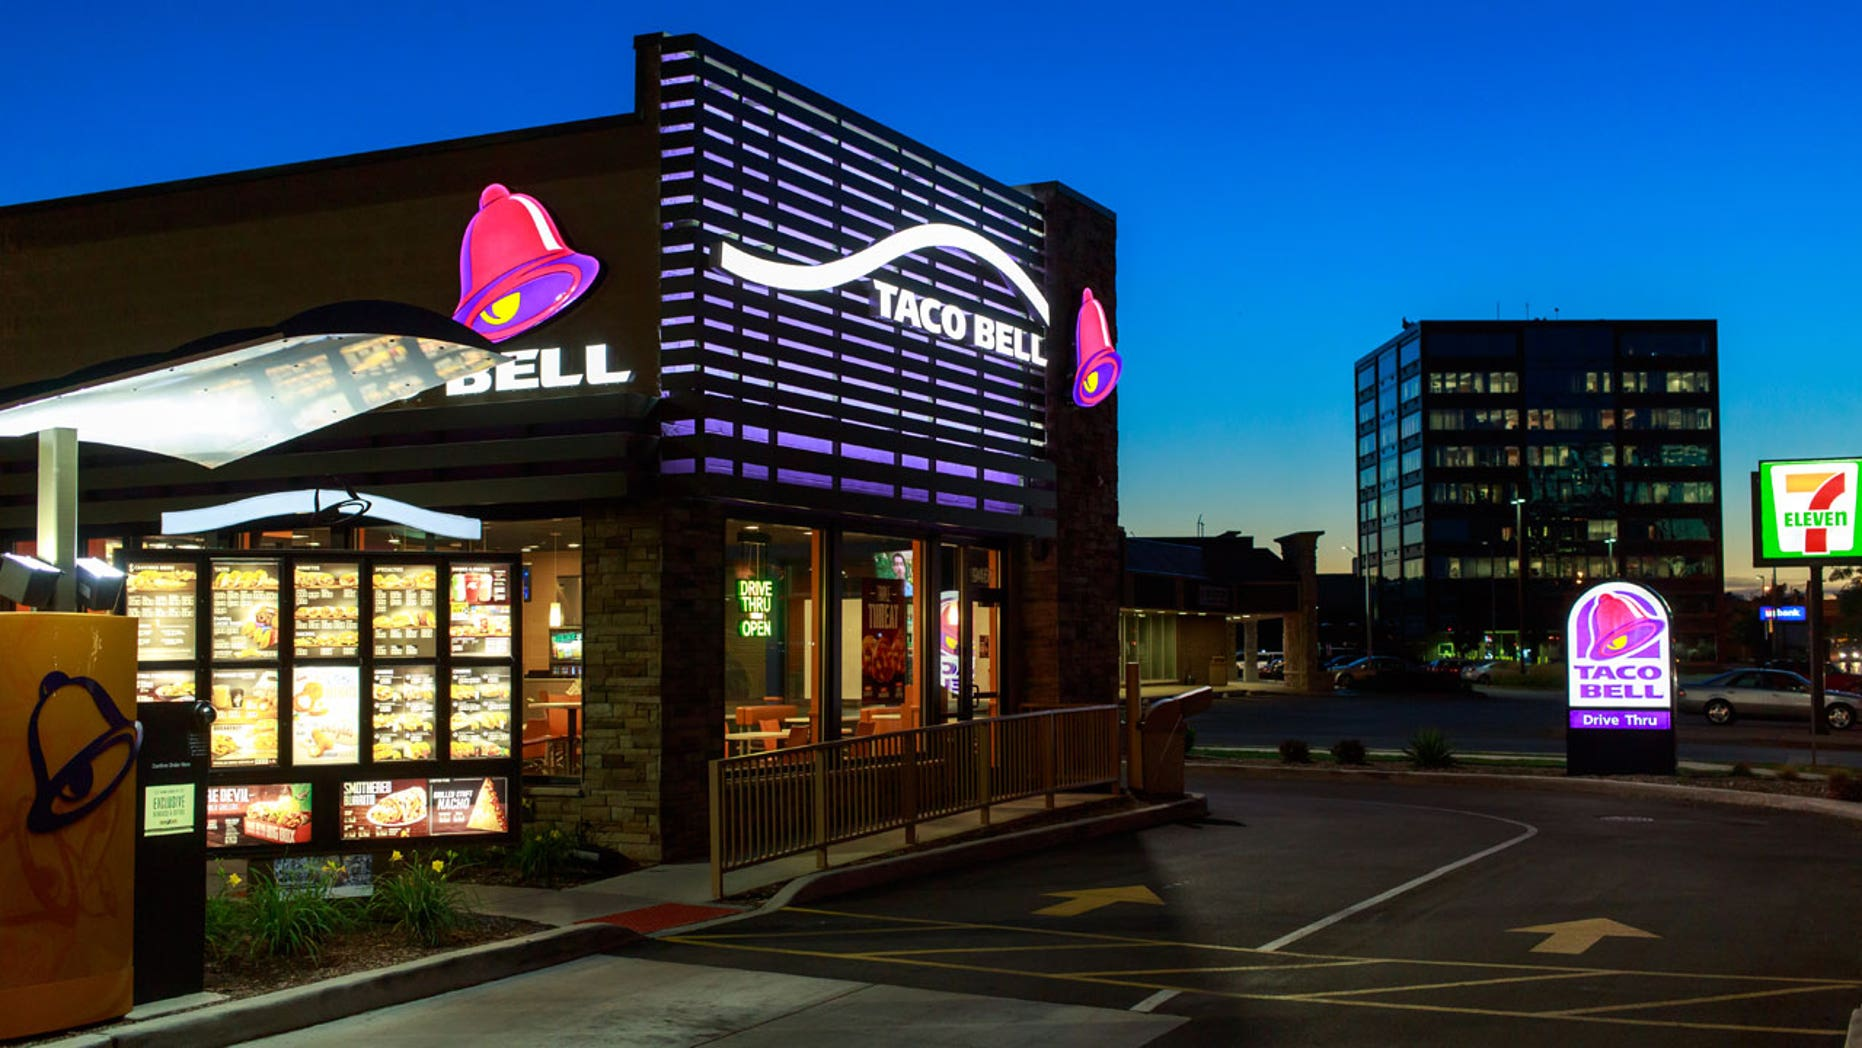 Things got crazy when a former Taco Bell employee arrived to pick up her last paycheck.